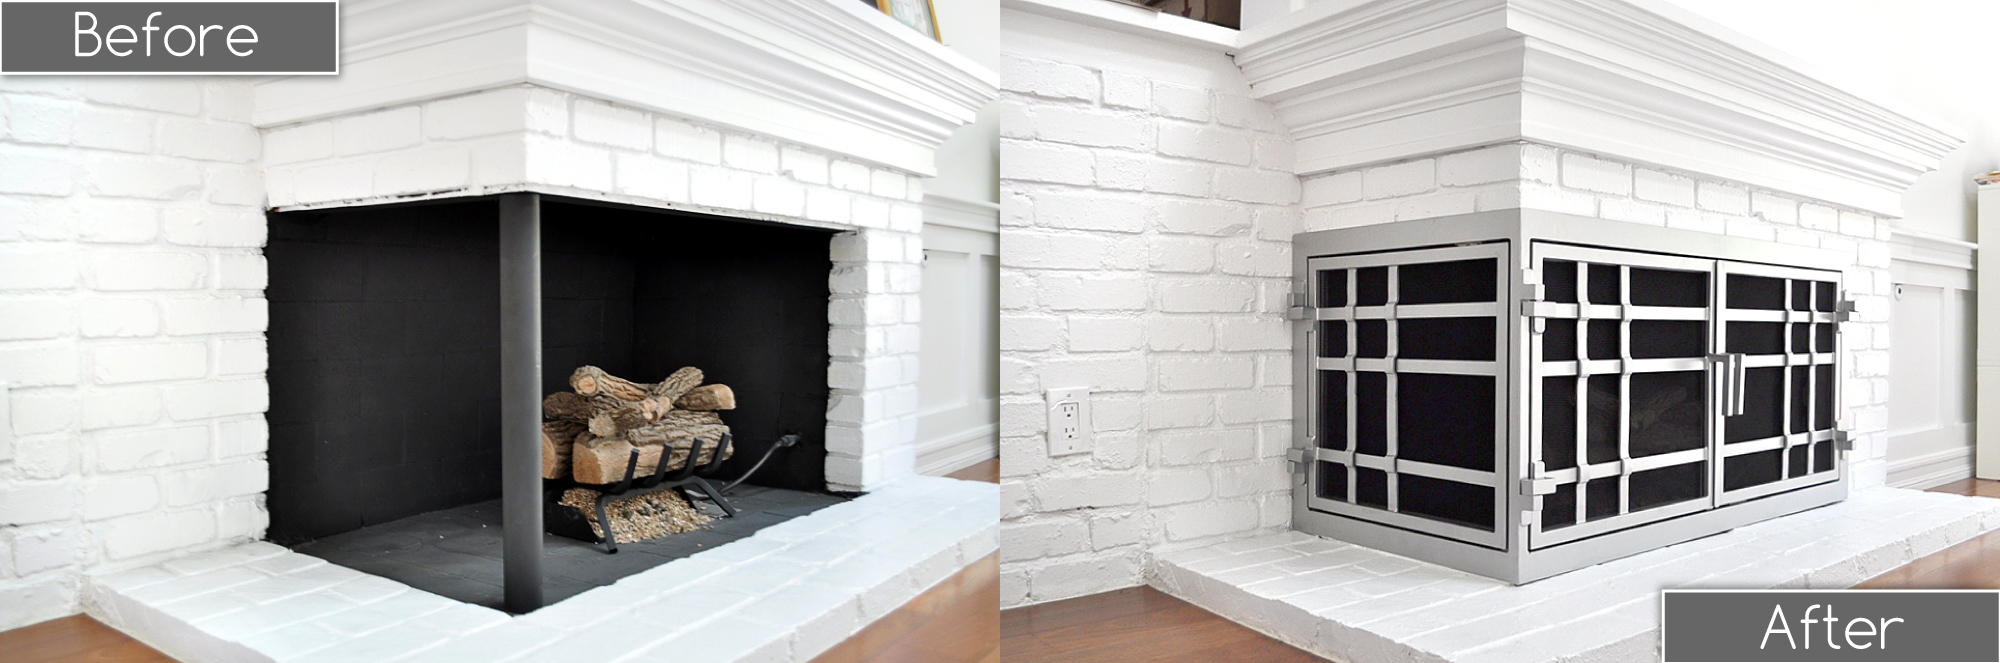 Before After Ams Fireplace Inc